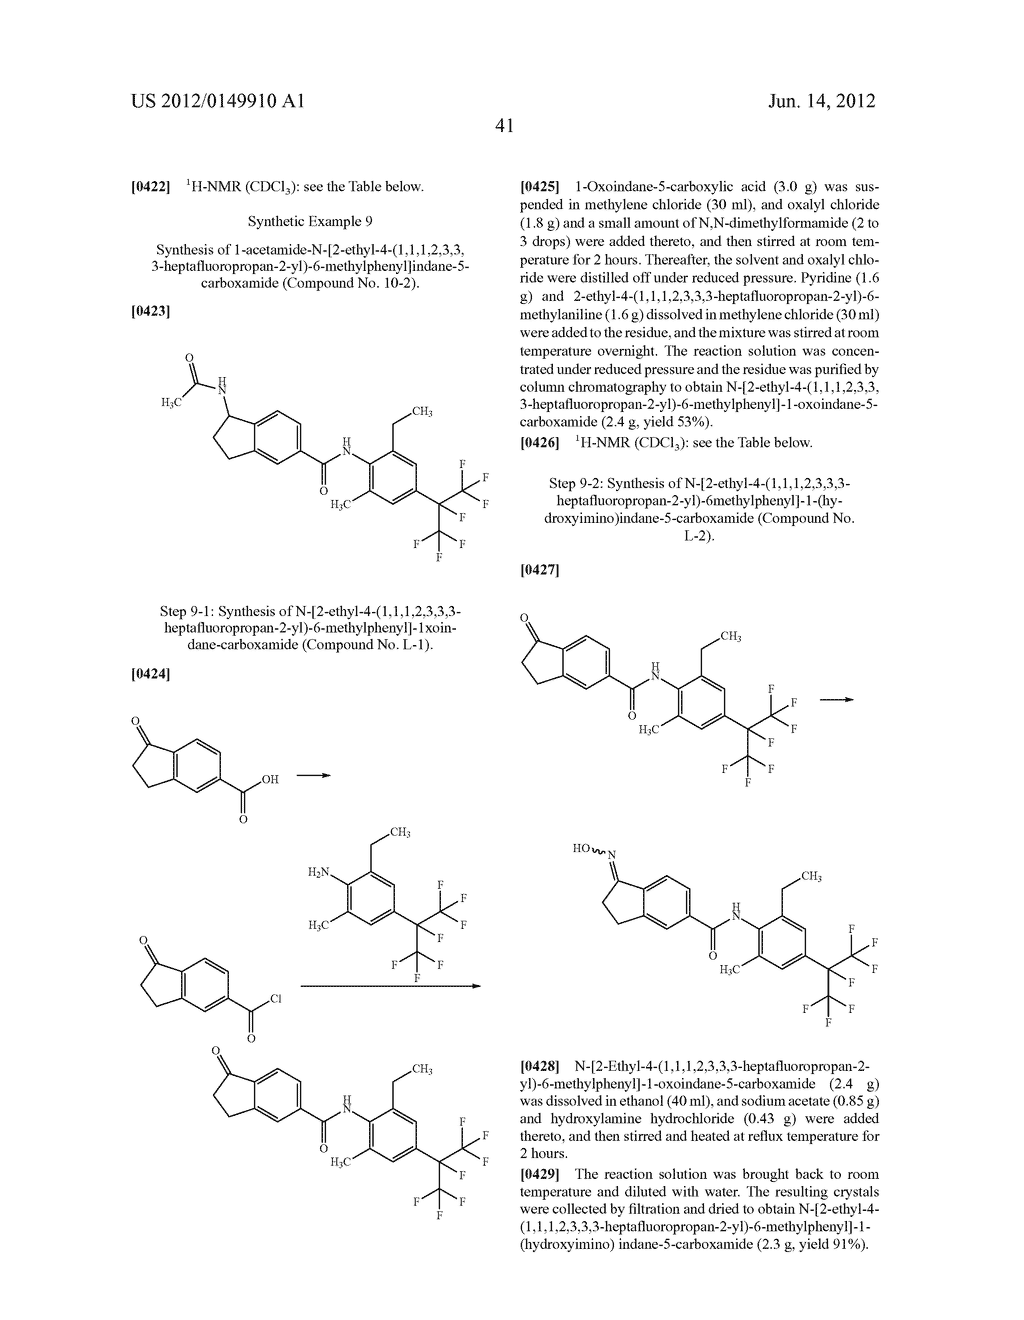 Pesticidal Carboxamides - diagram, schematic, and image 42